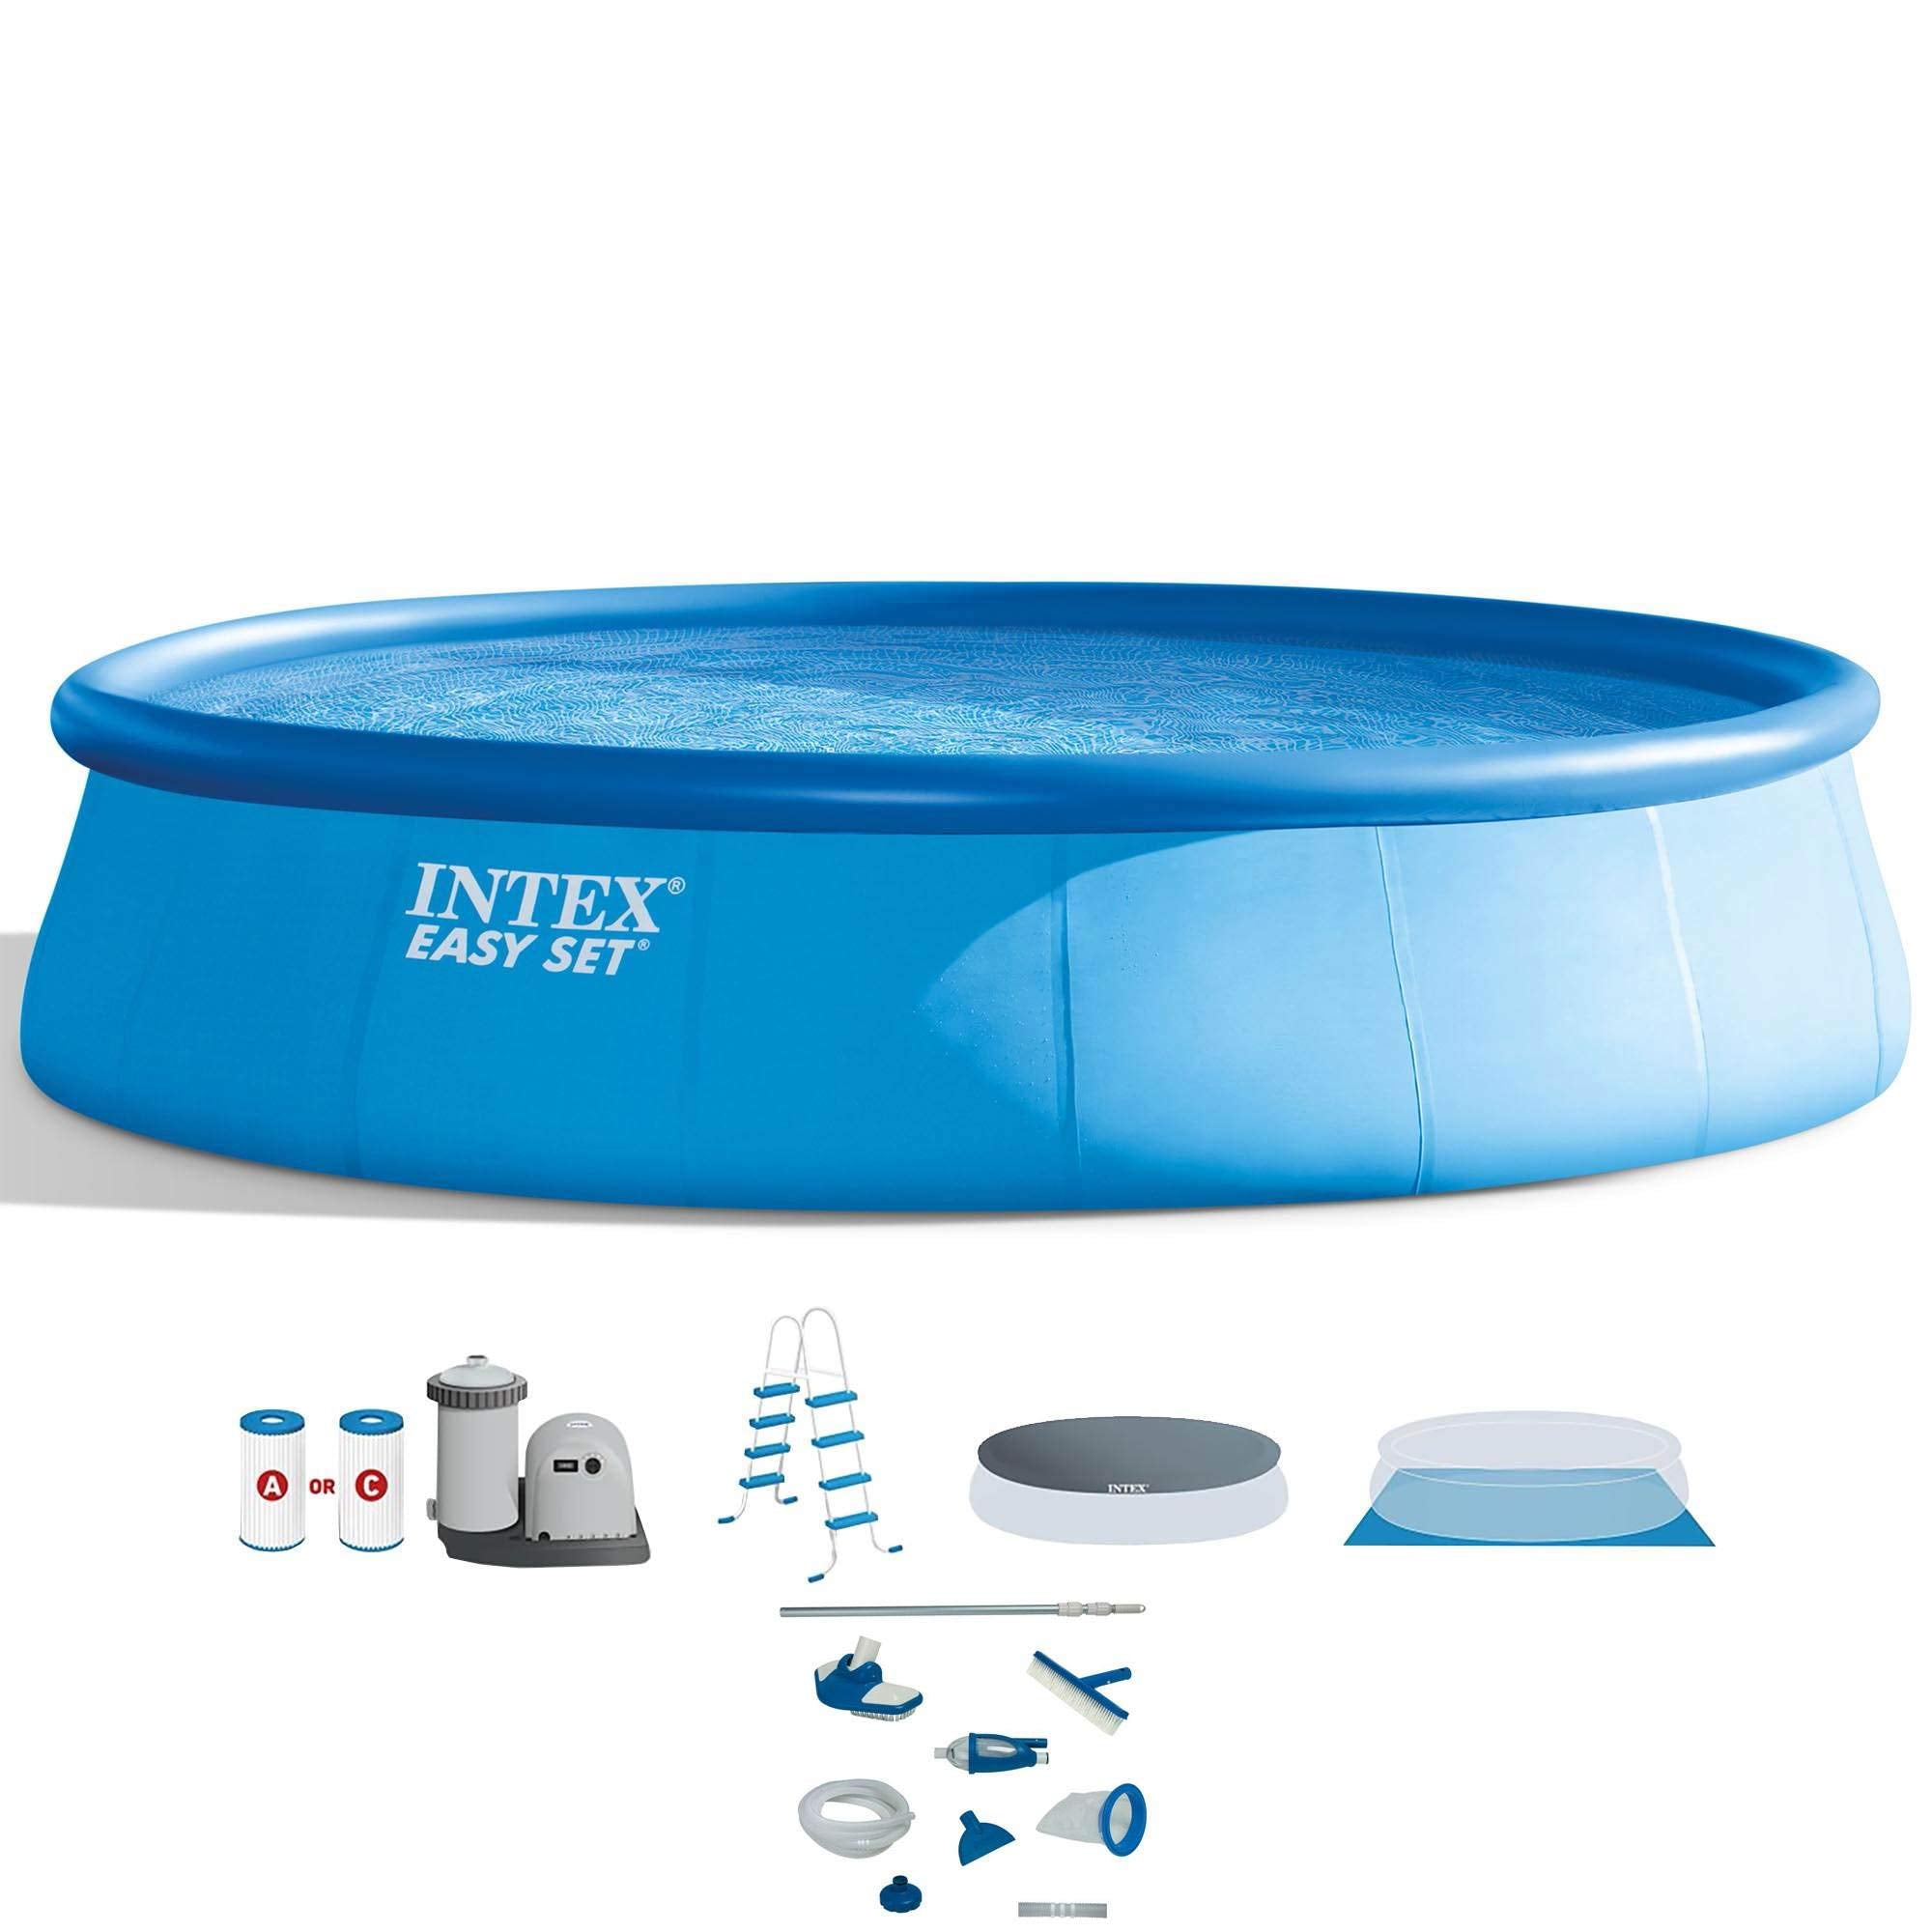 "Intex 18' x 48"" Inflatable Easy Set Pool with Ladder, Pump, and Maintenance Kit"